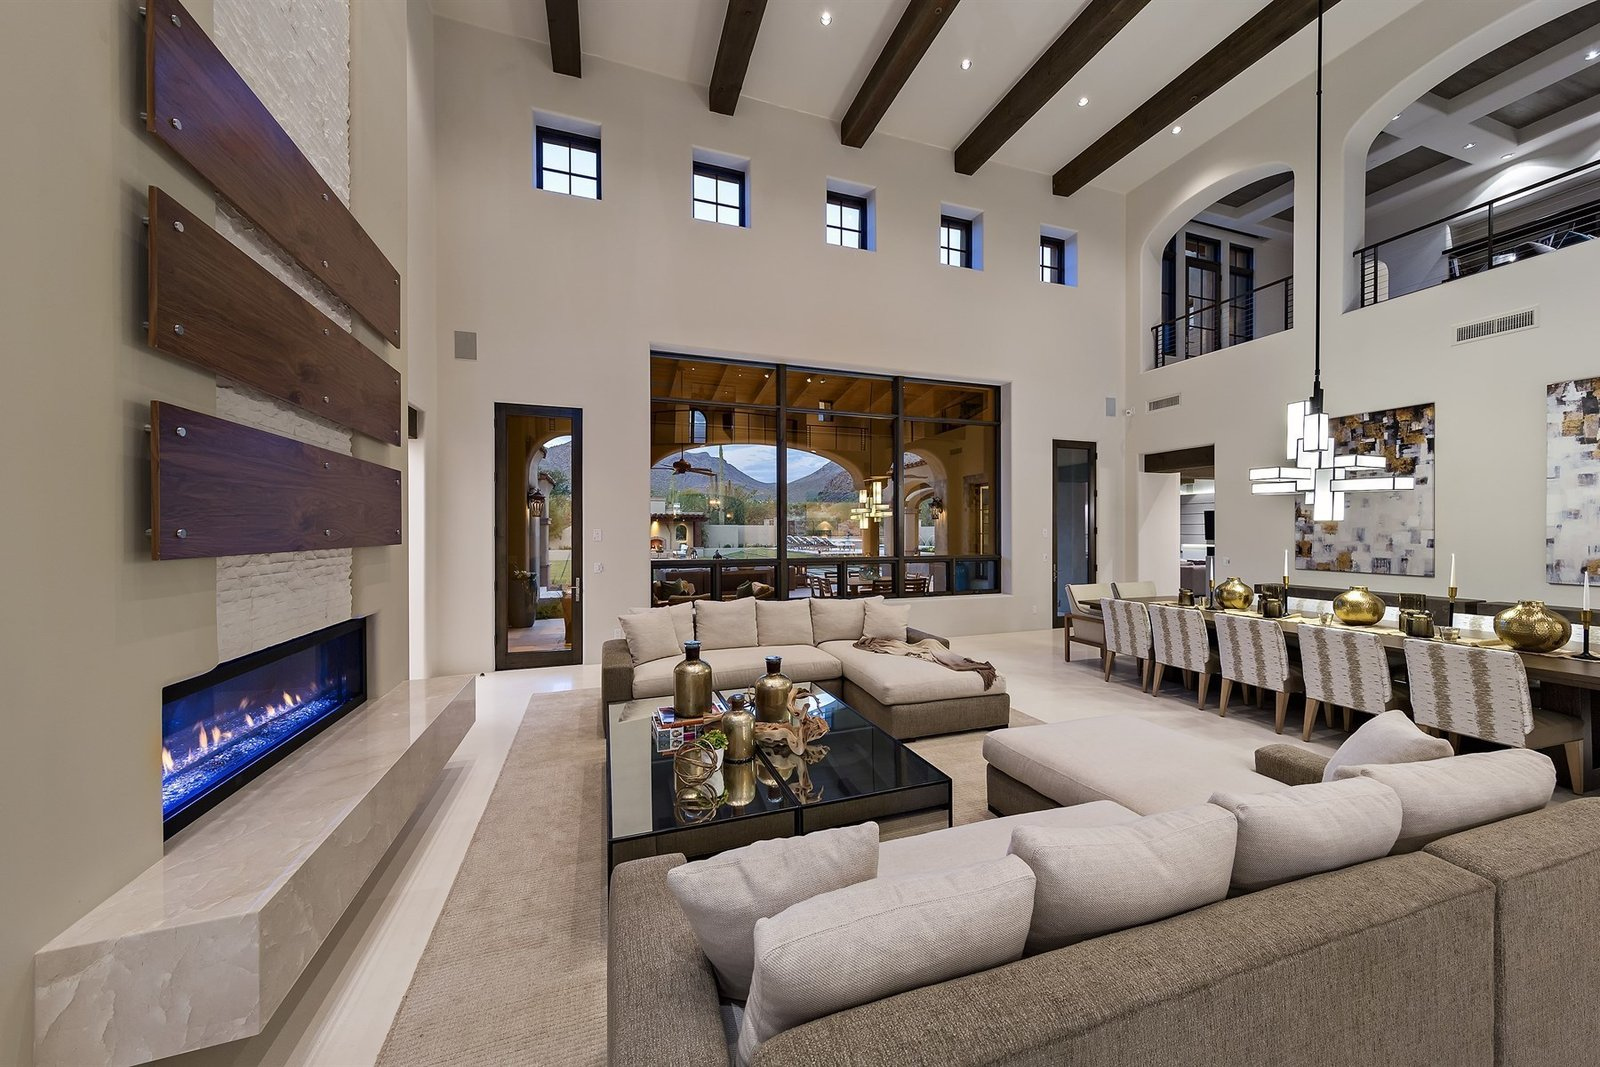 Photo 9 of 9 in Get Smart: Tech-Forward Homes Around the Globe